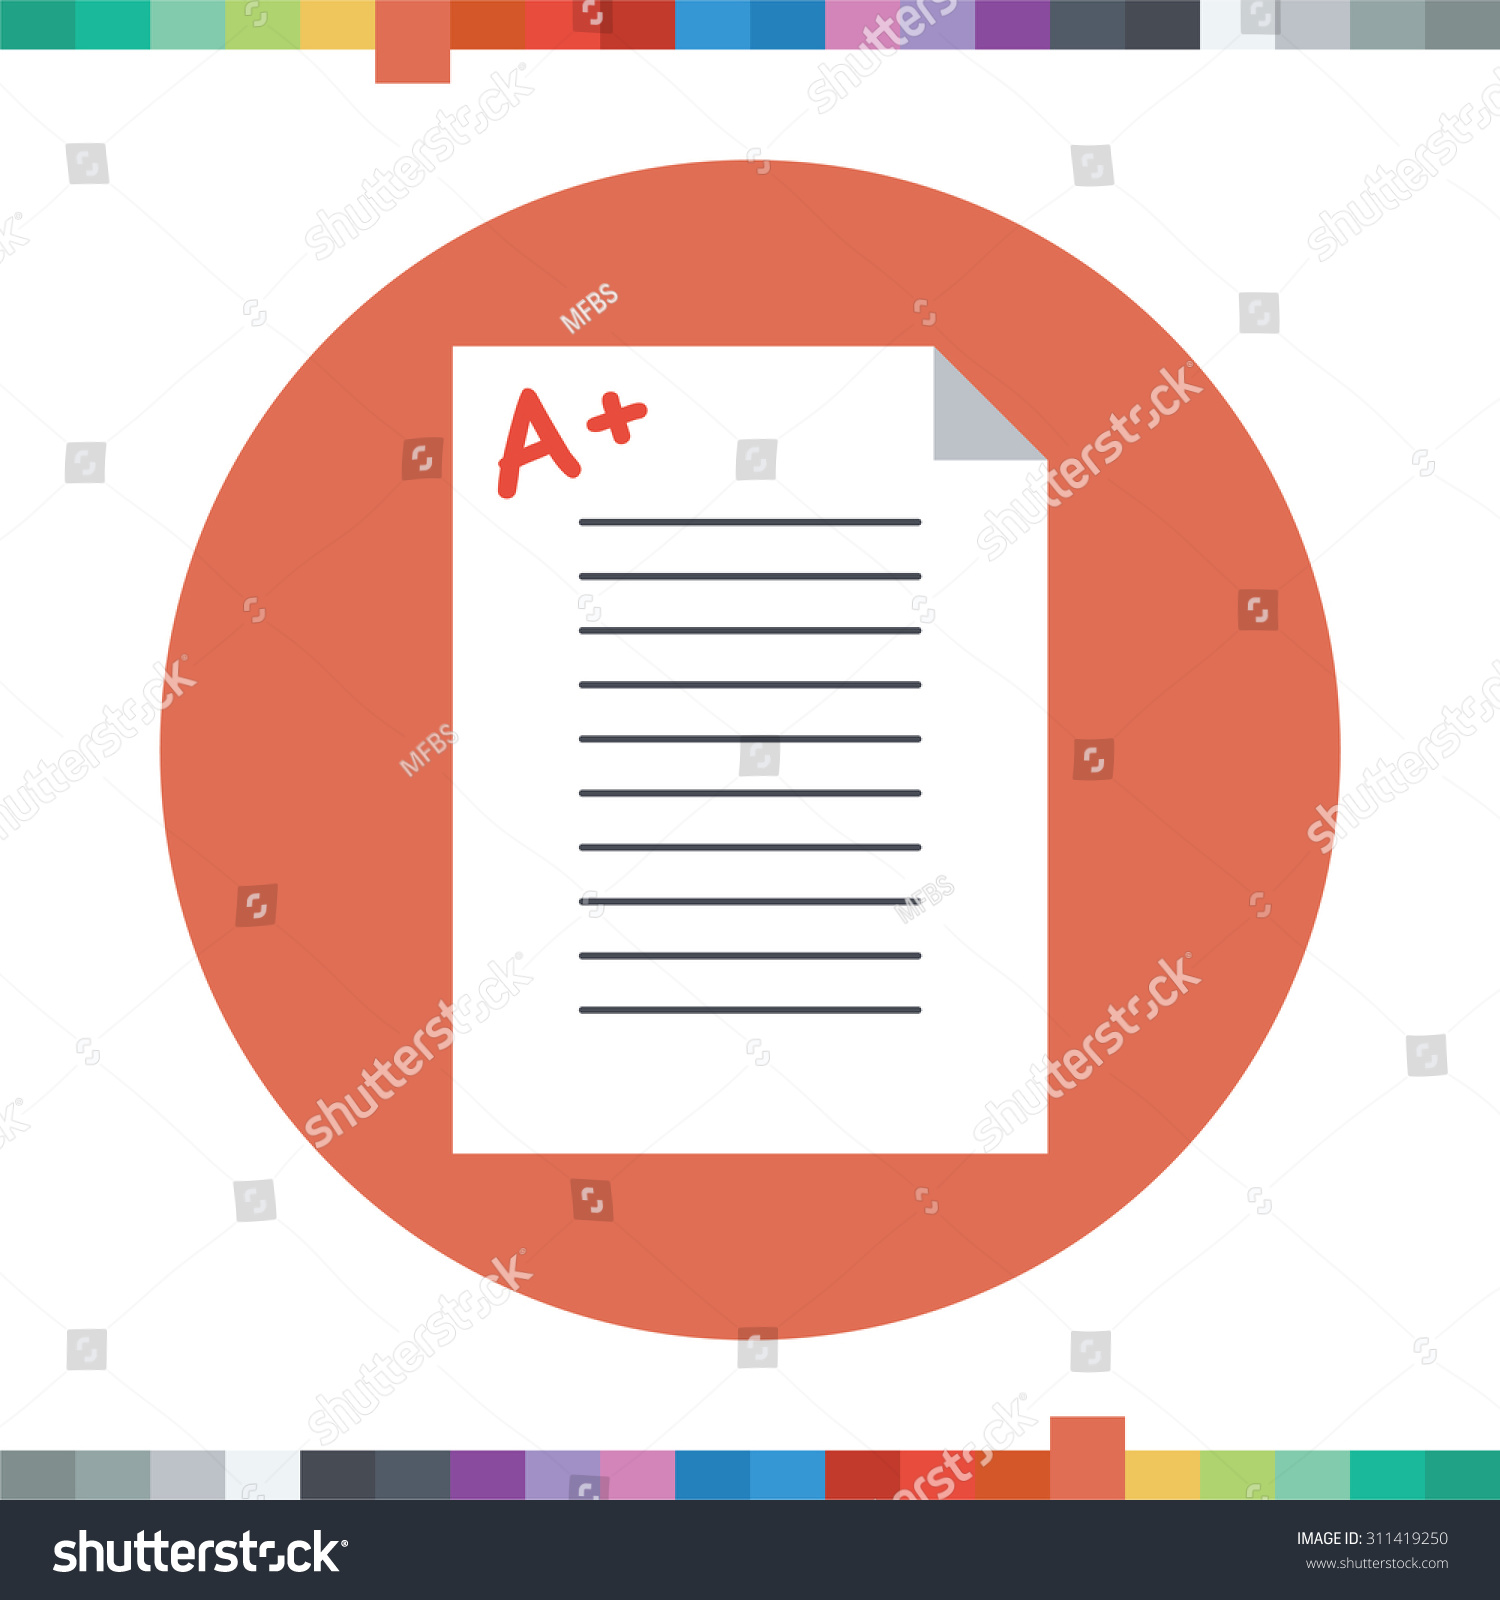 good grades icon plus sign on stock vector shutterstock good grades icon a plus sign on an exam paper